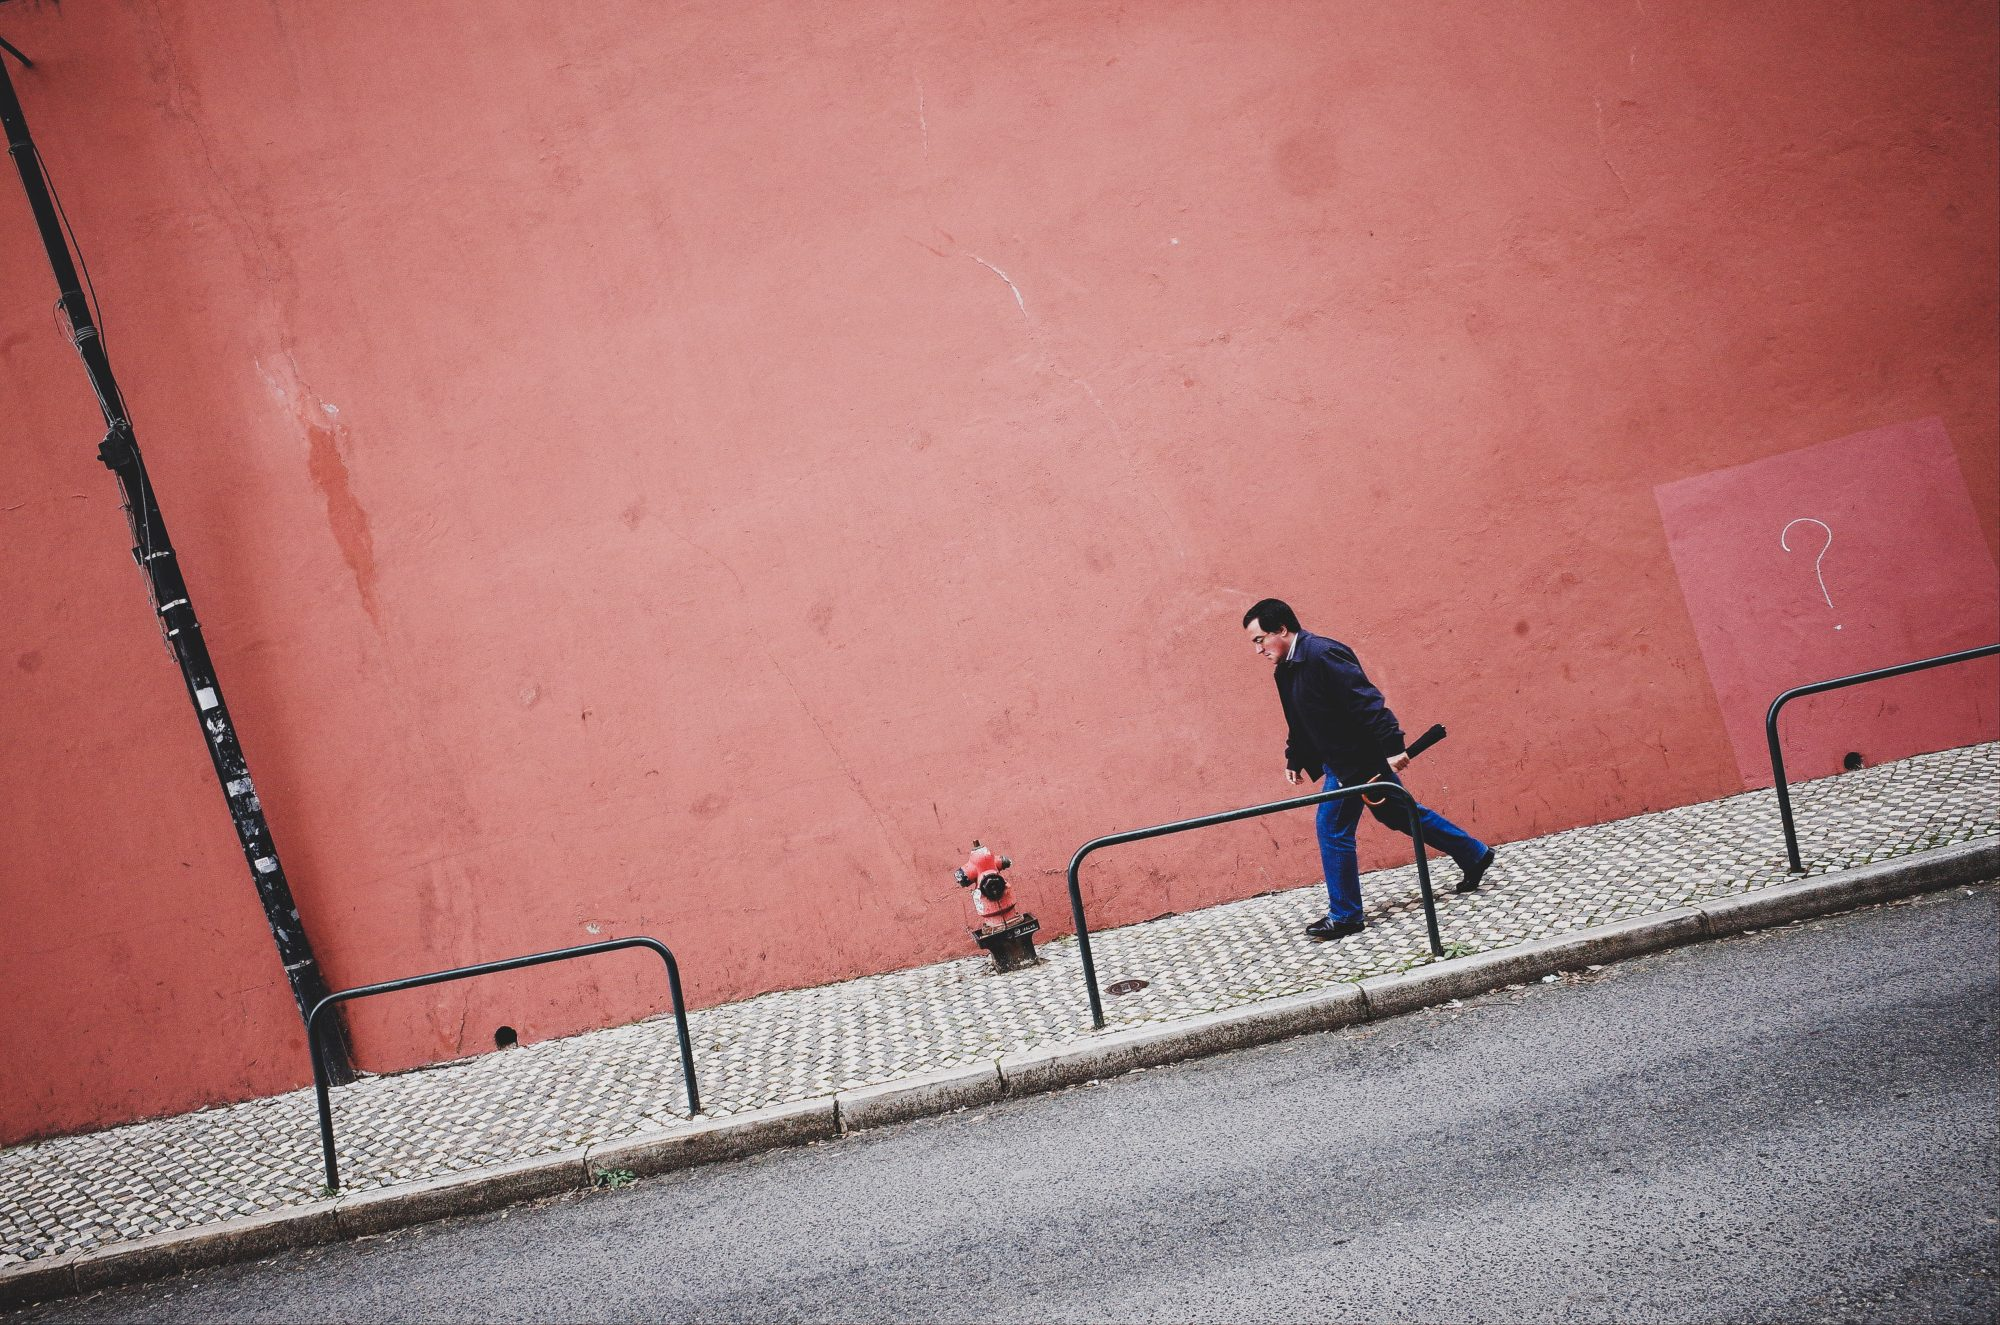 Walking man with pink wall. Dutch angle (tilted) composition. Lisbon, 2018